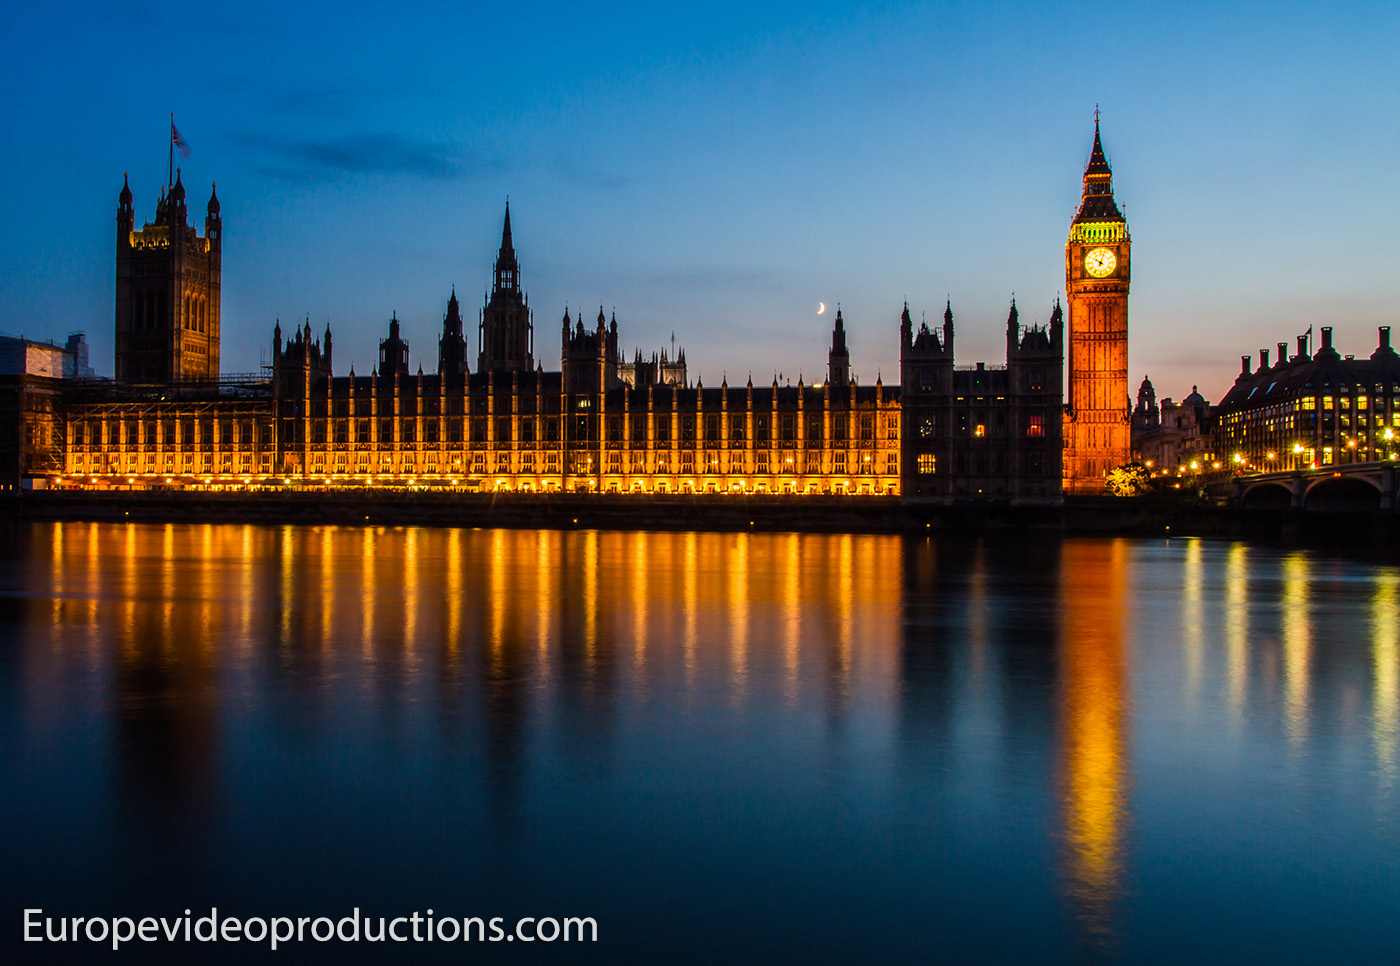 Palace of Westminster and Big Ben during night time in London, England